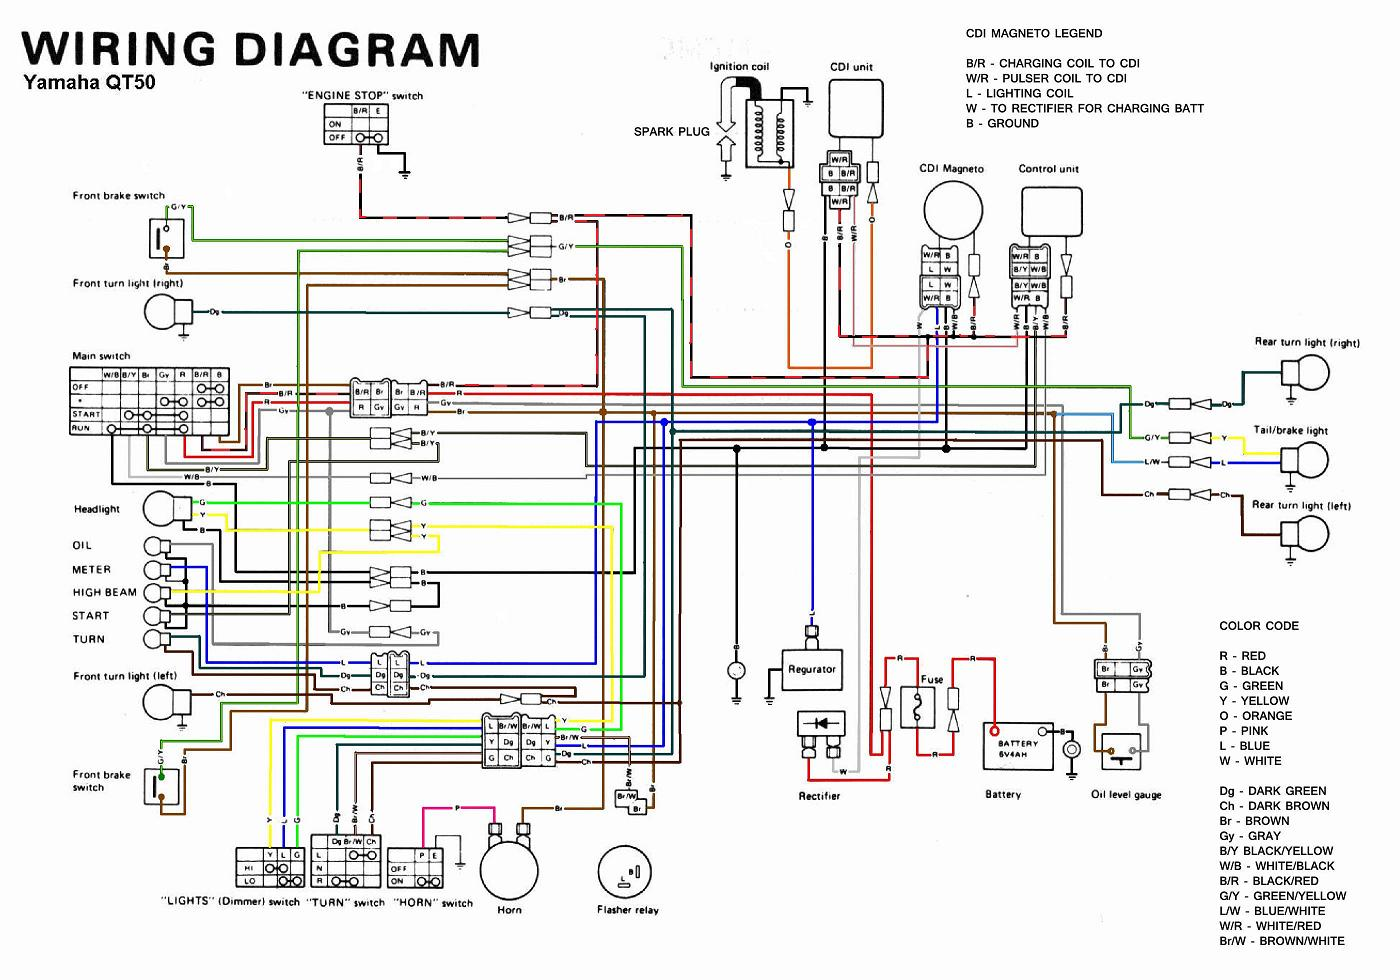 Honda Aero 50 Wiring Diagram on international starter wiring diagram